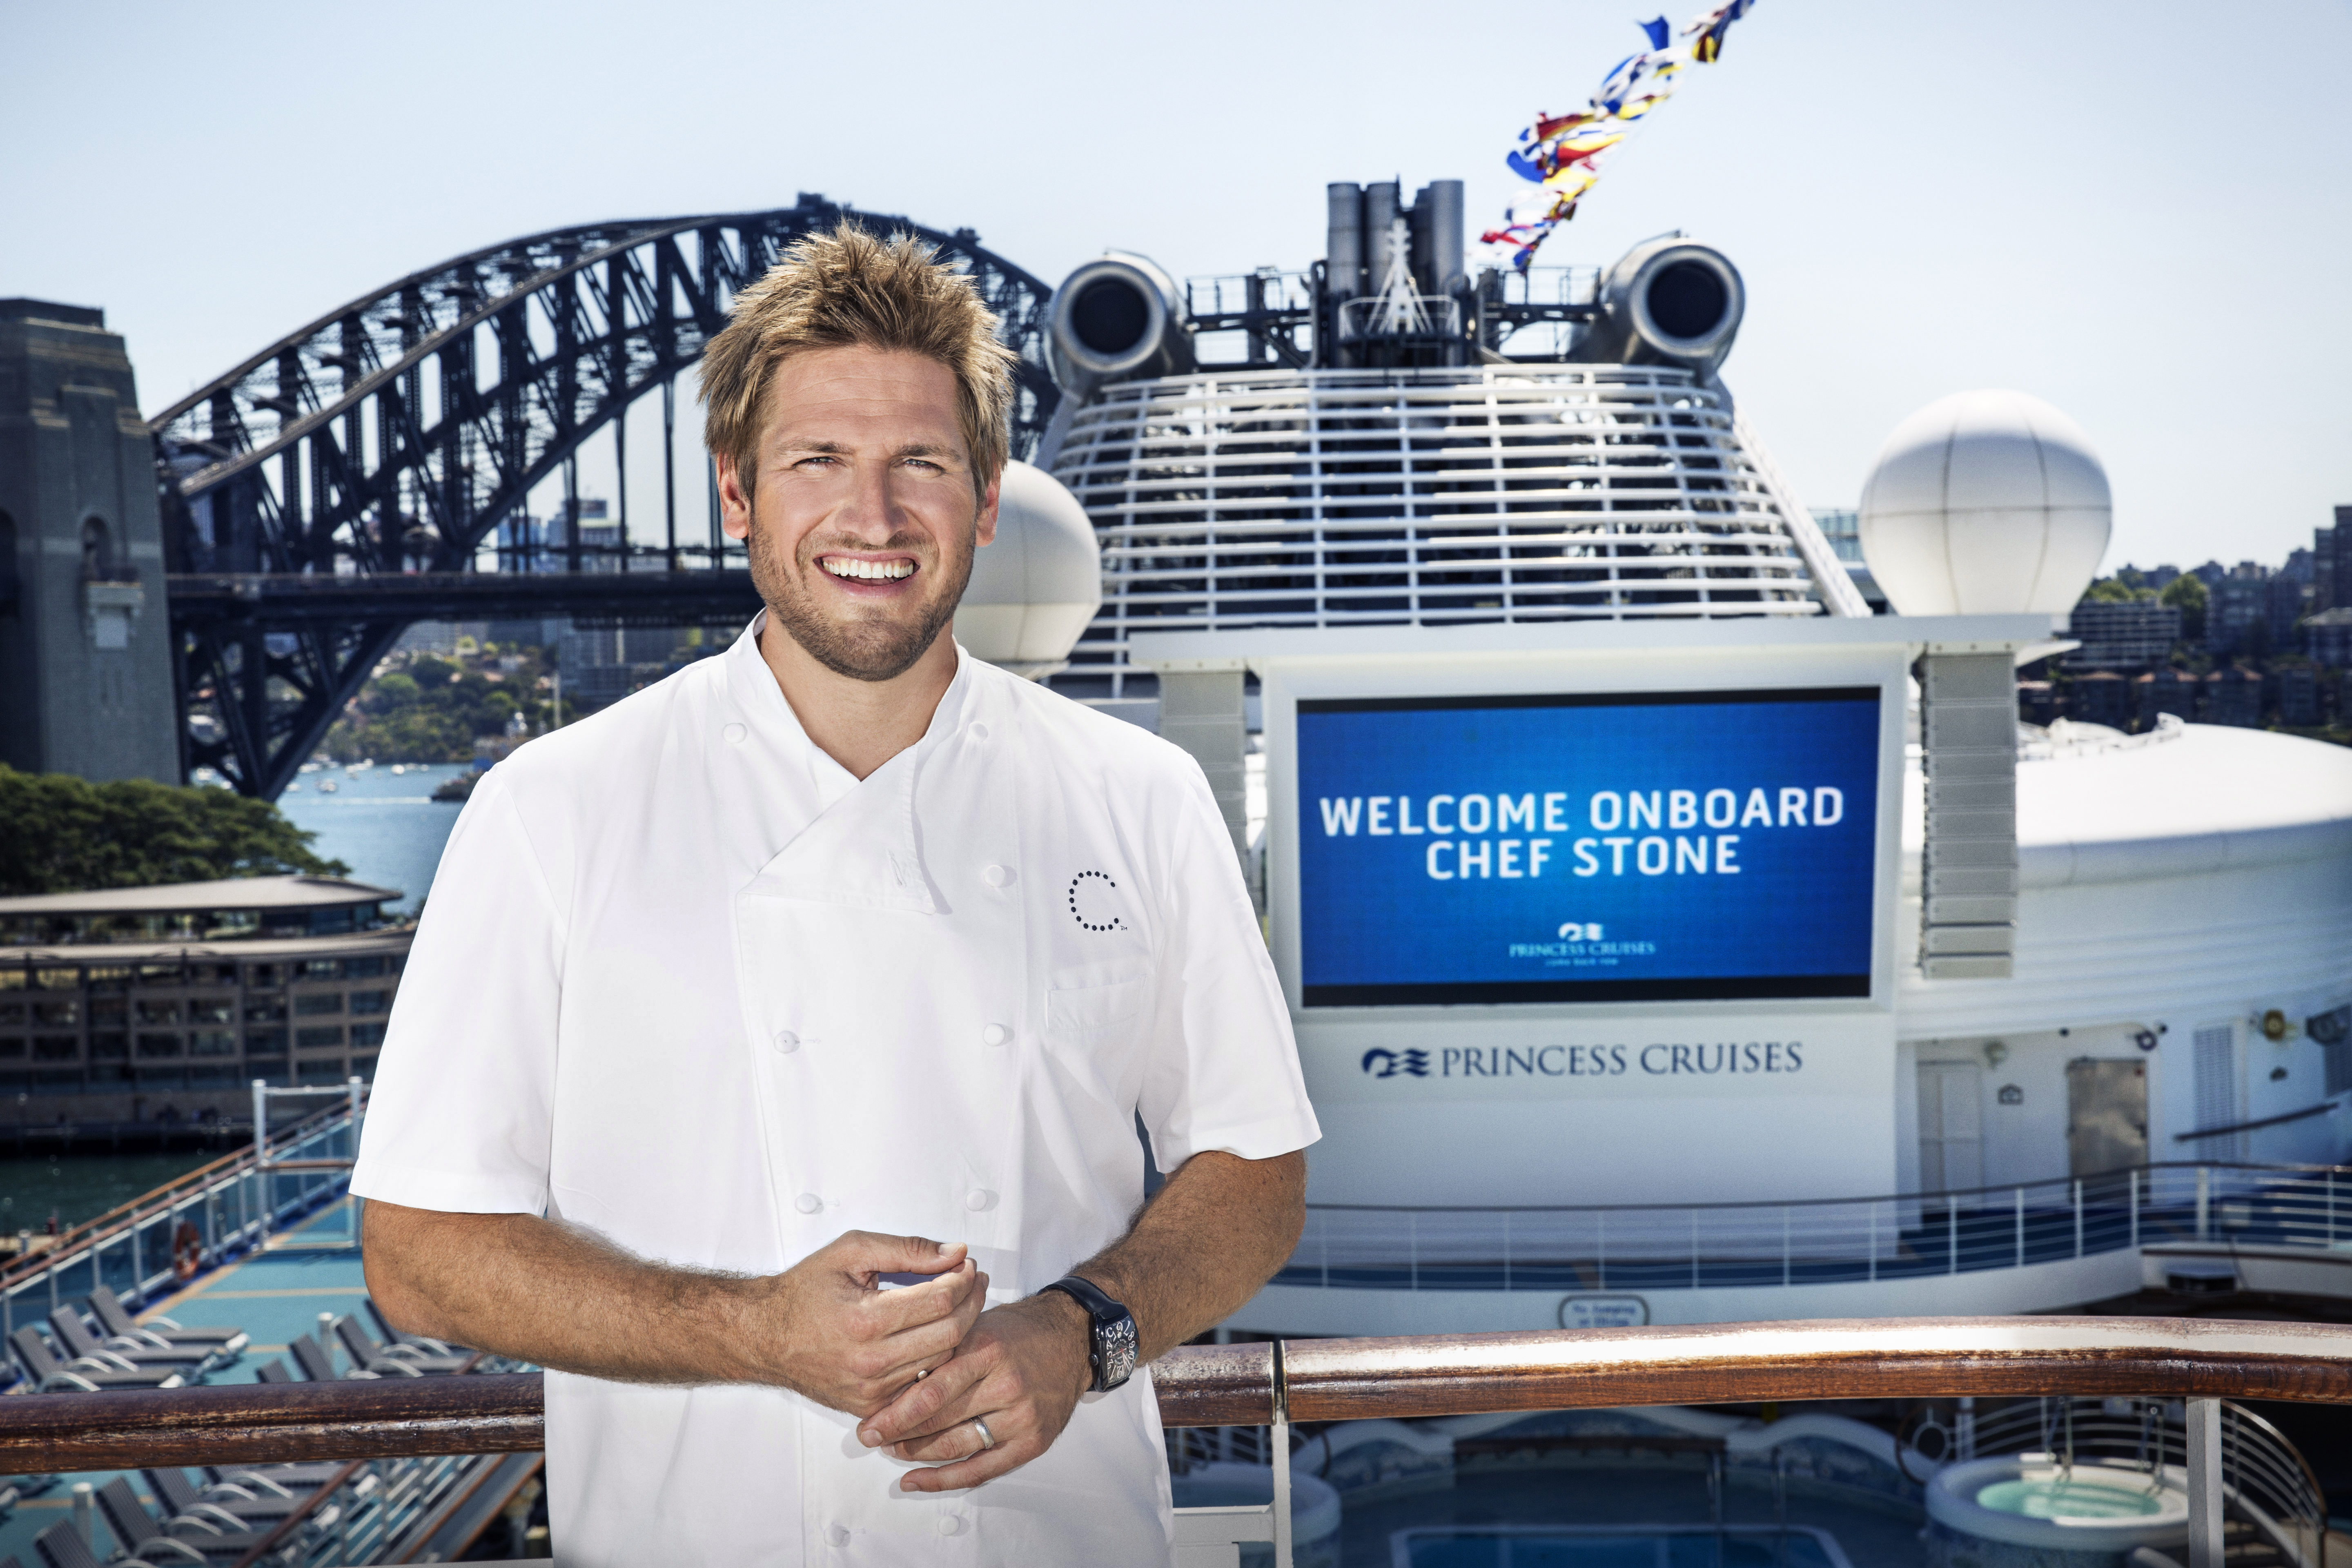 Chef Curtis Stone on the Diamond Princess in Sydney Harbour. Tuesday 29th September 2015. Photo by DAMIAN SHAW.com